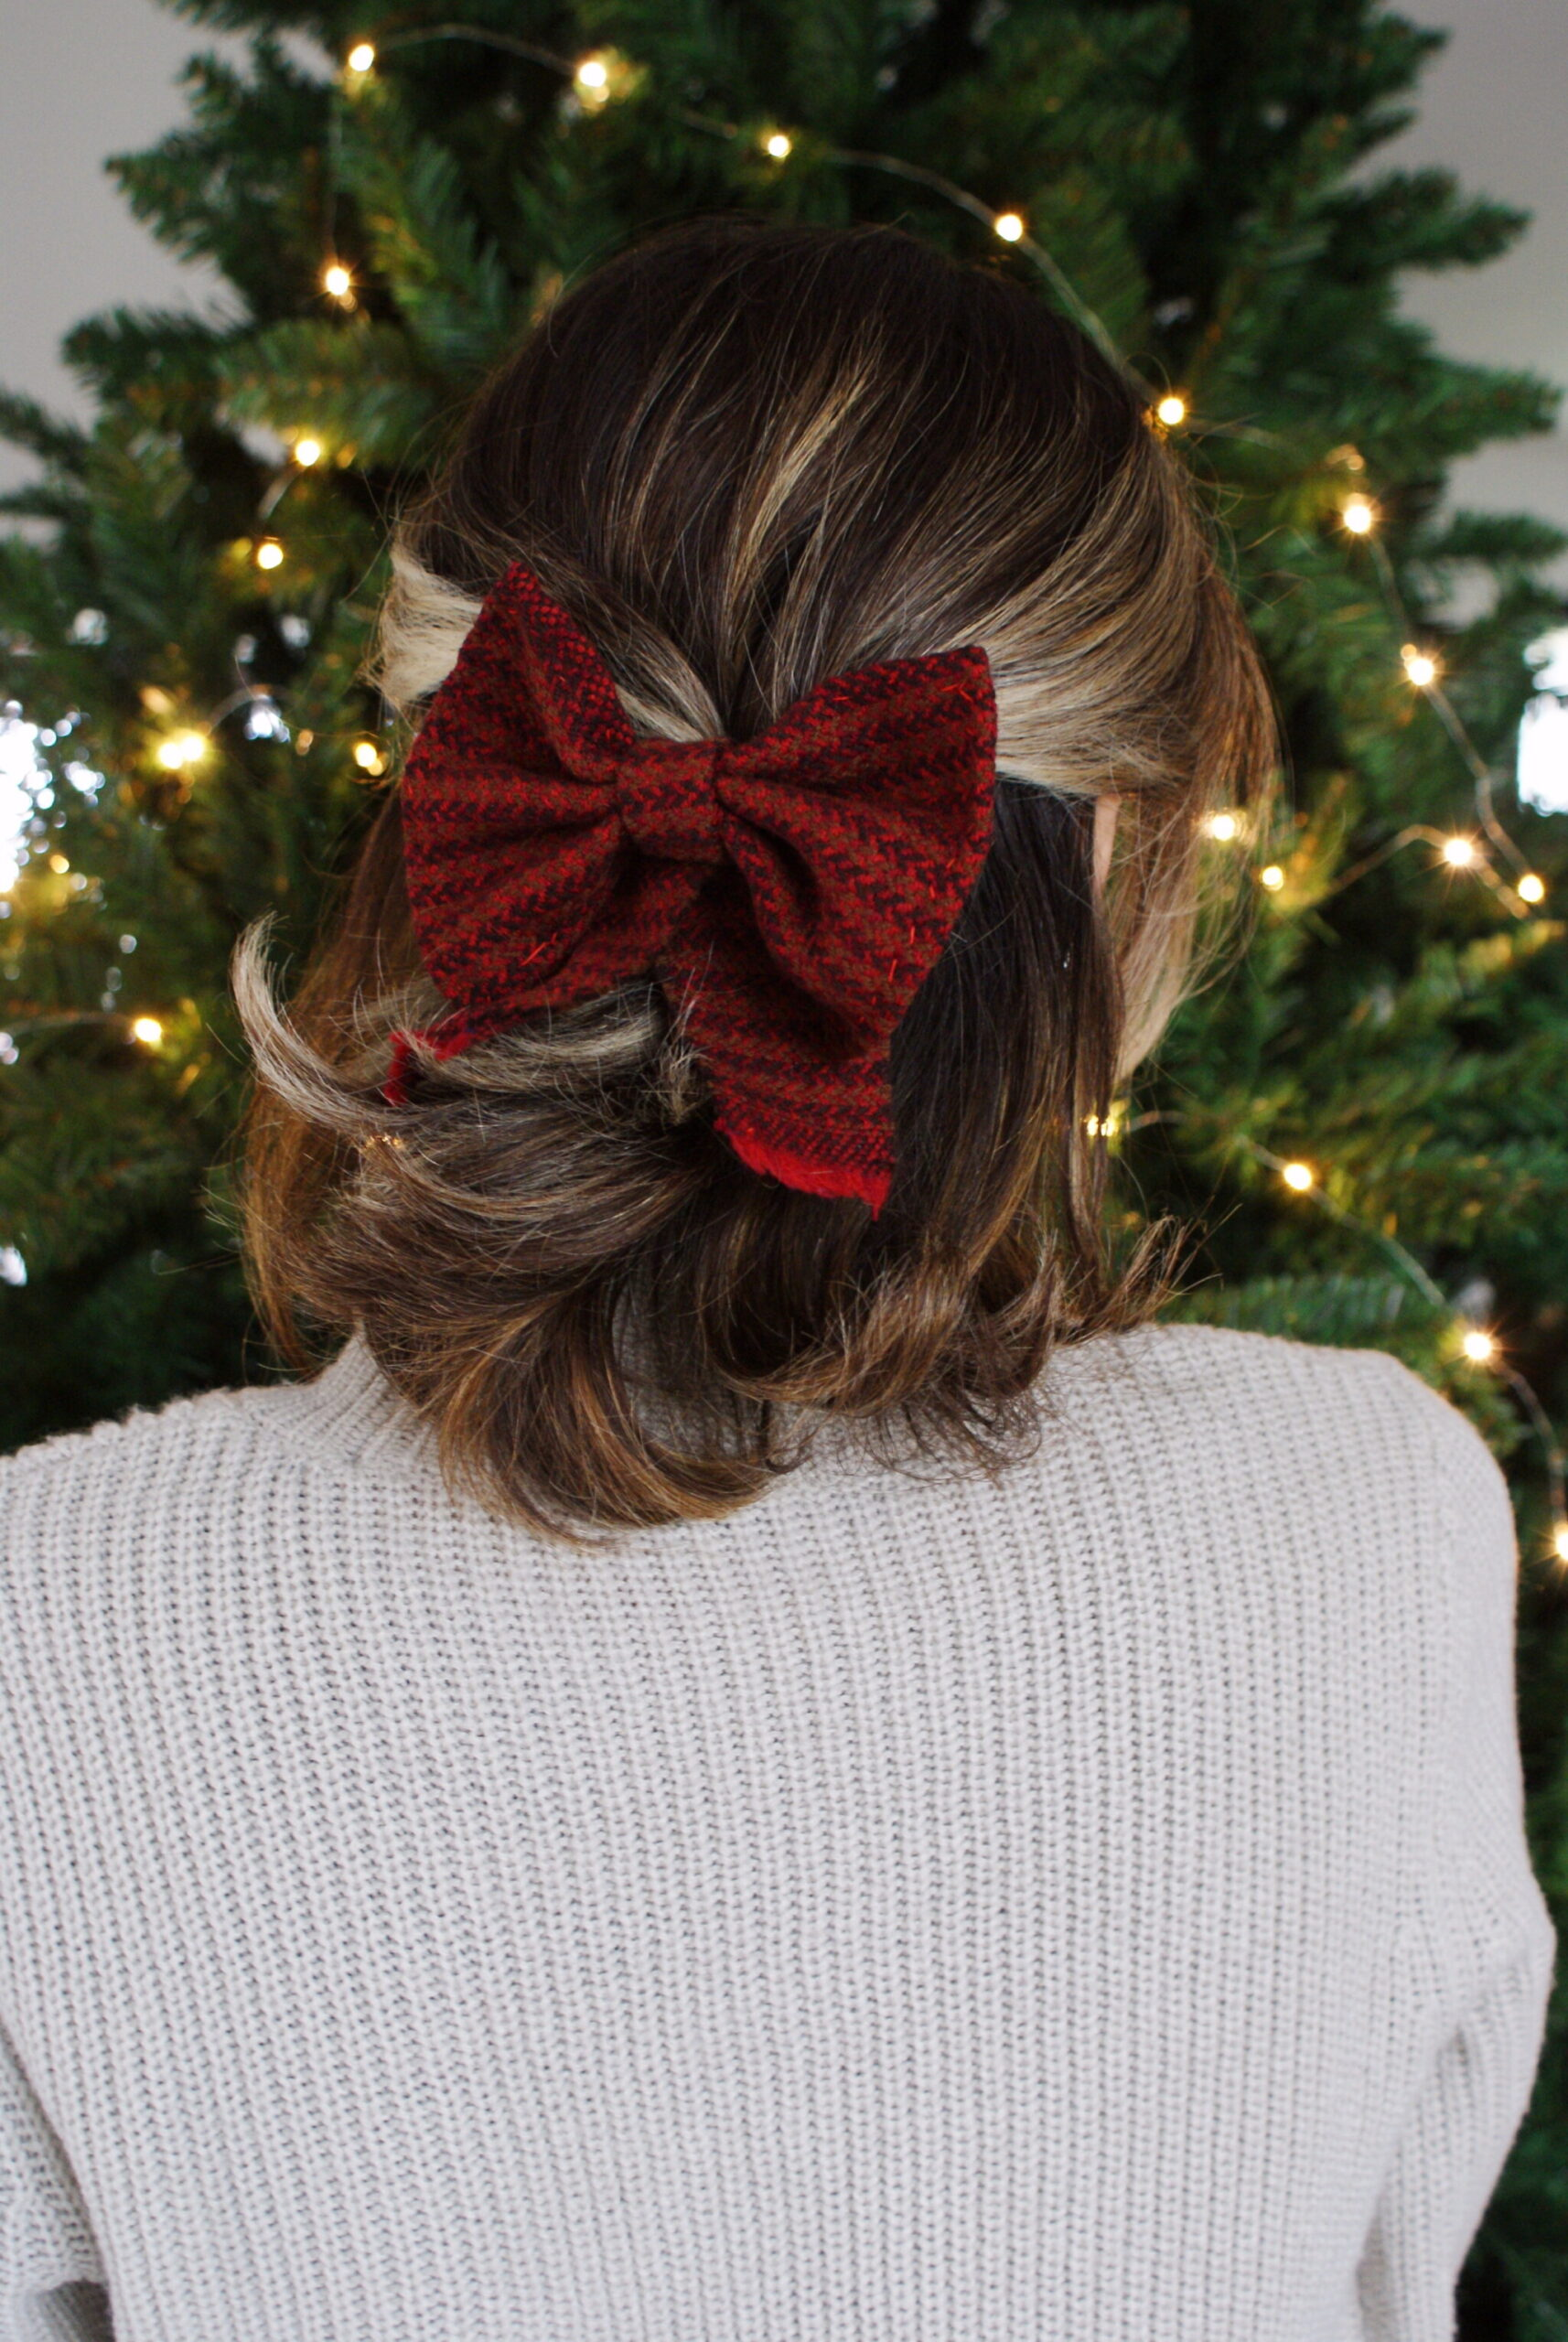 DIY TARTAN BOW HAIR CLIP (EASY HANDMADE ACCESSORY FOR THE FESTIVE OUTFITS)